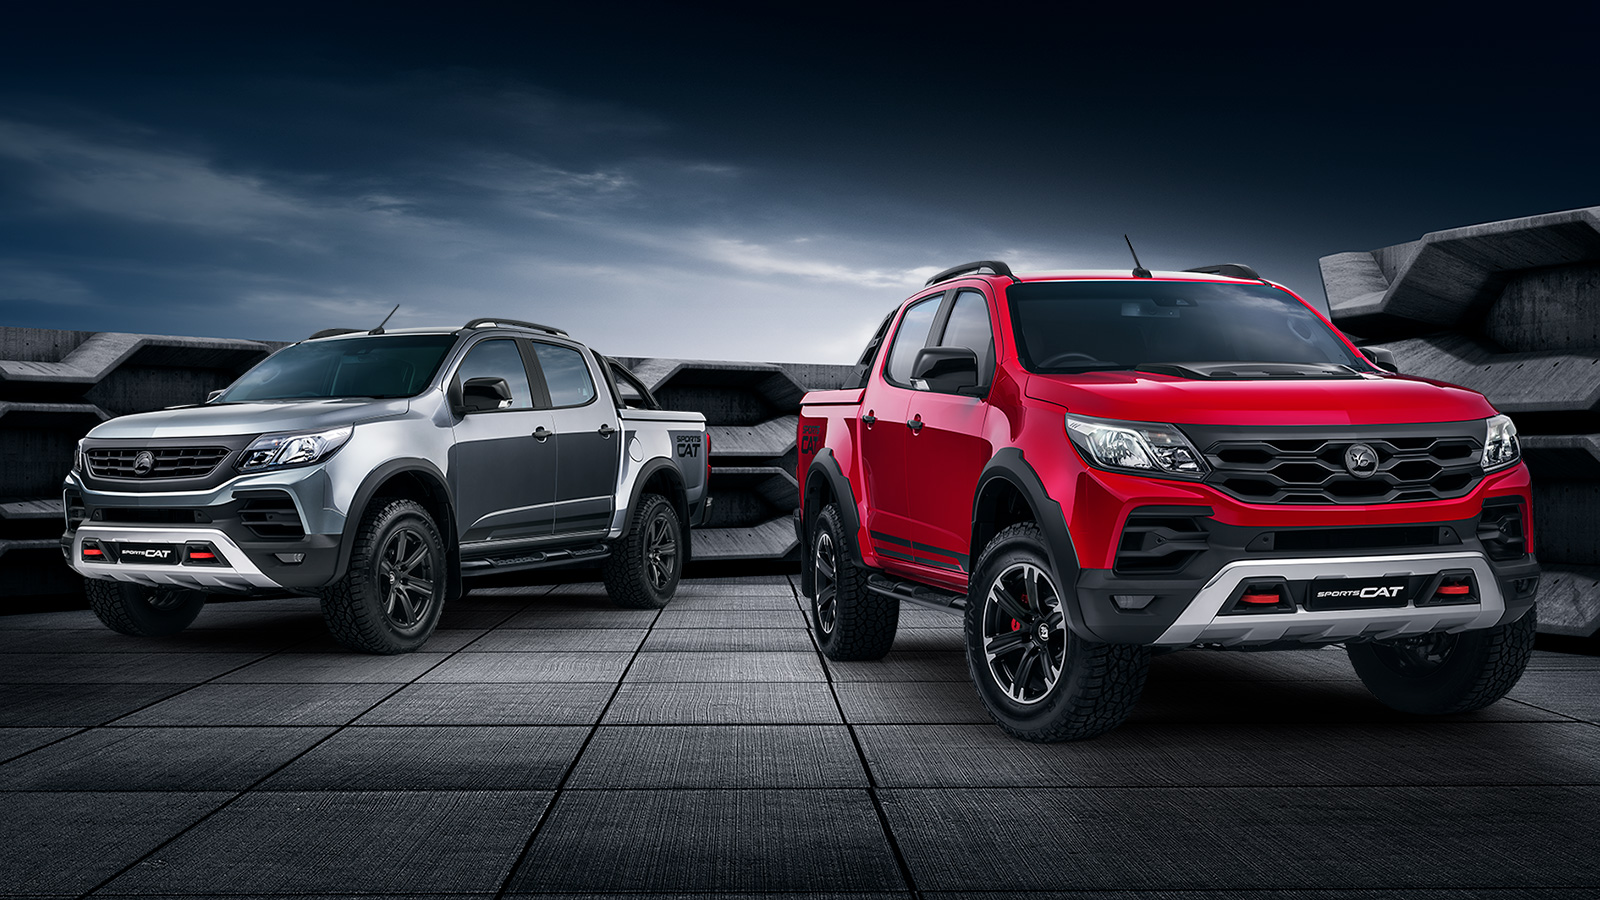 GM Holden and HSV Launch New Colorado SportsCat